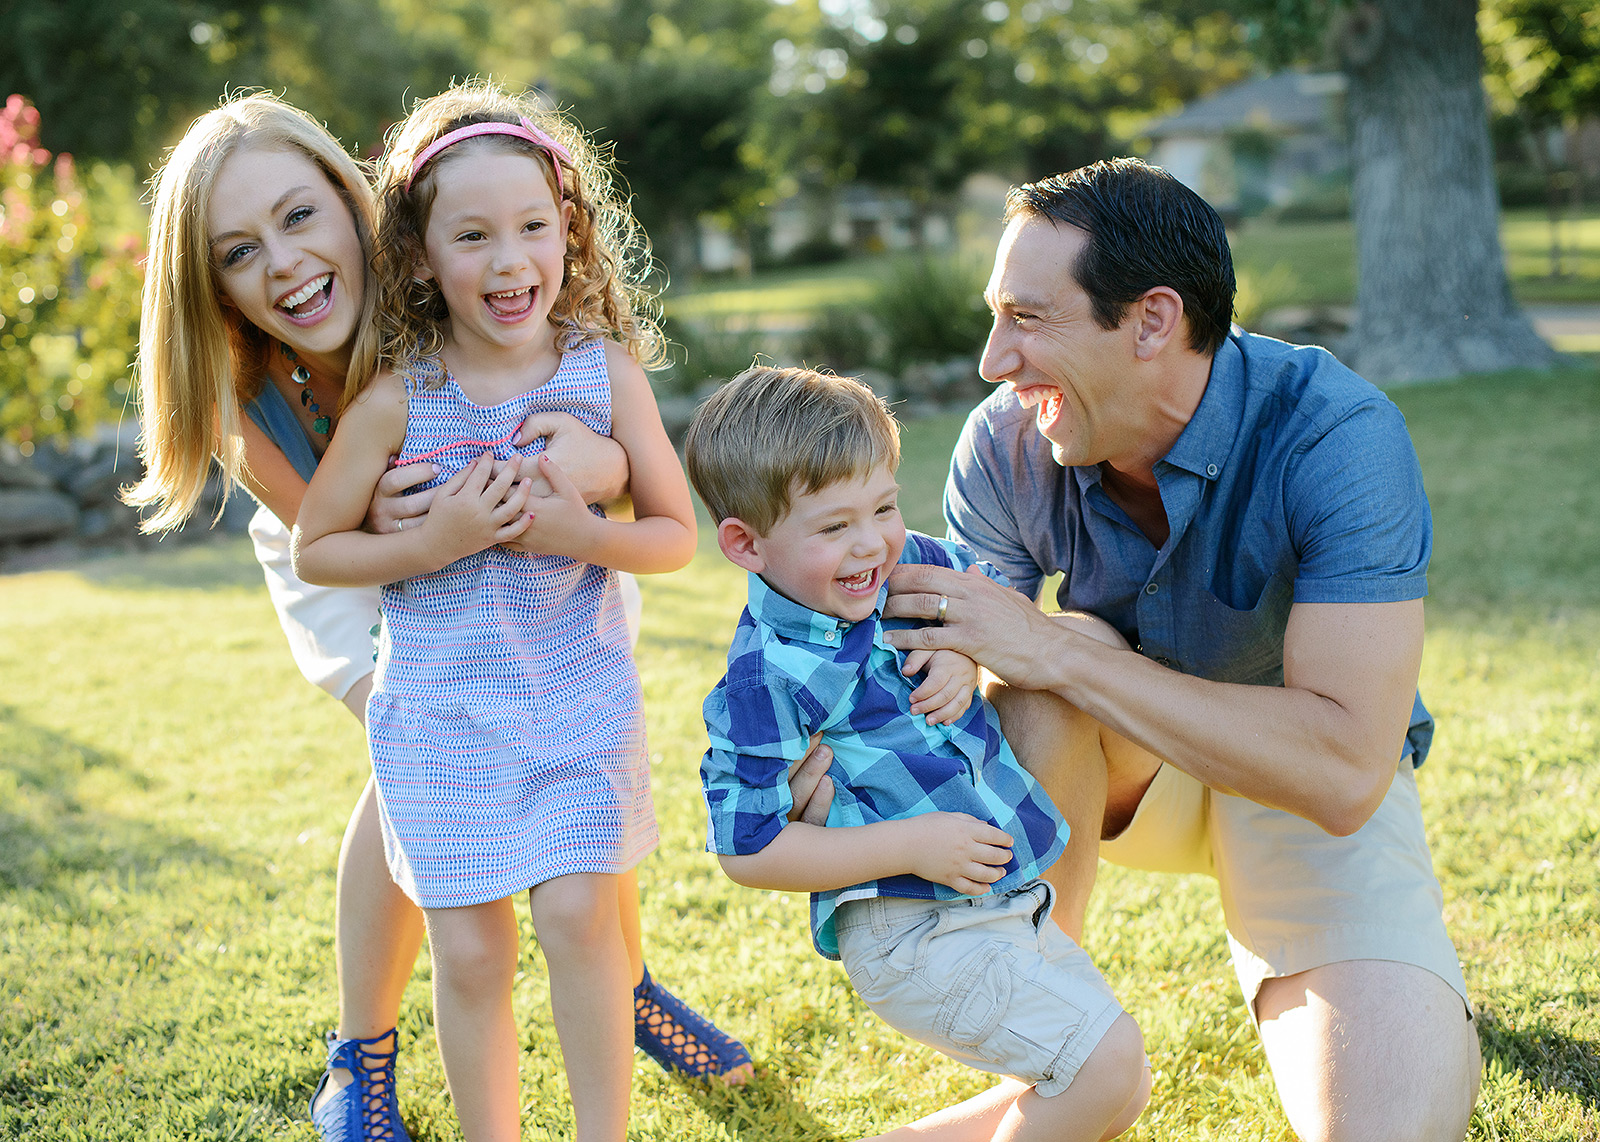 Laughing family photo on the grass outdoors in Sacramento